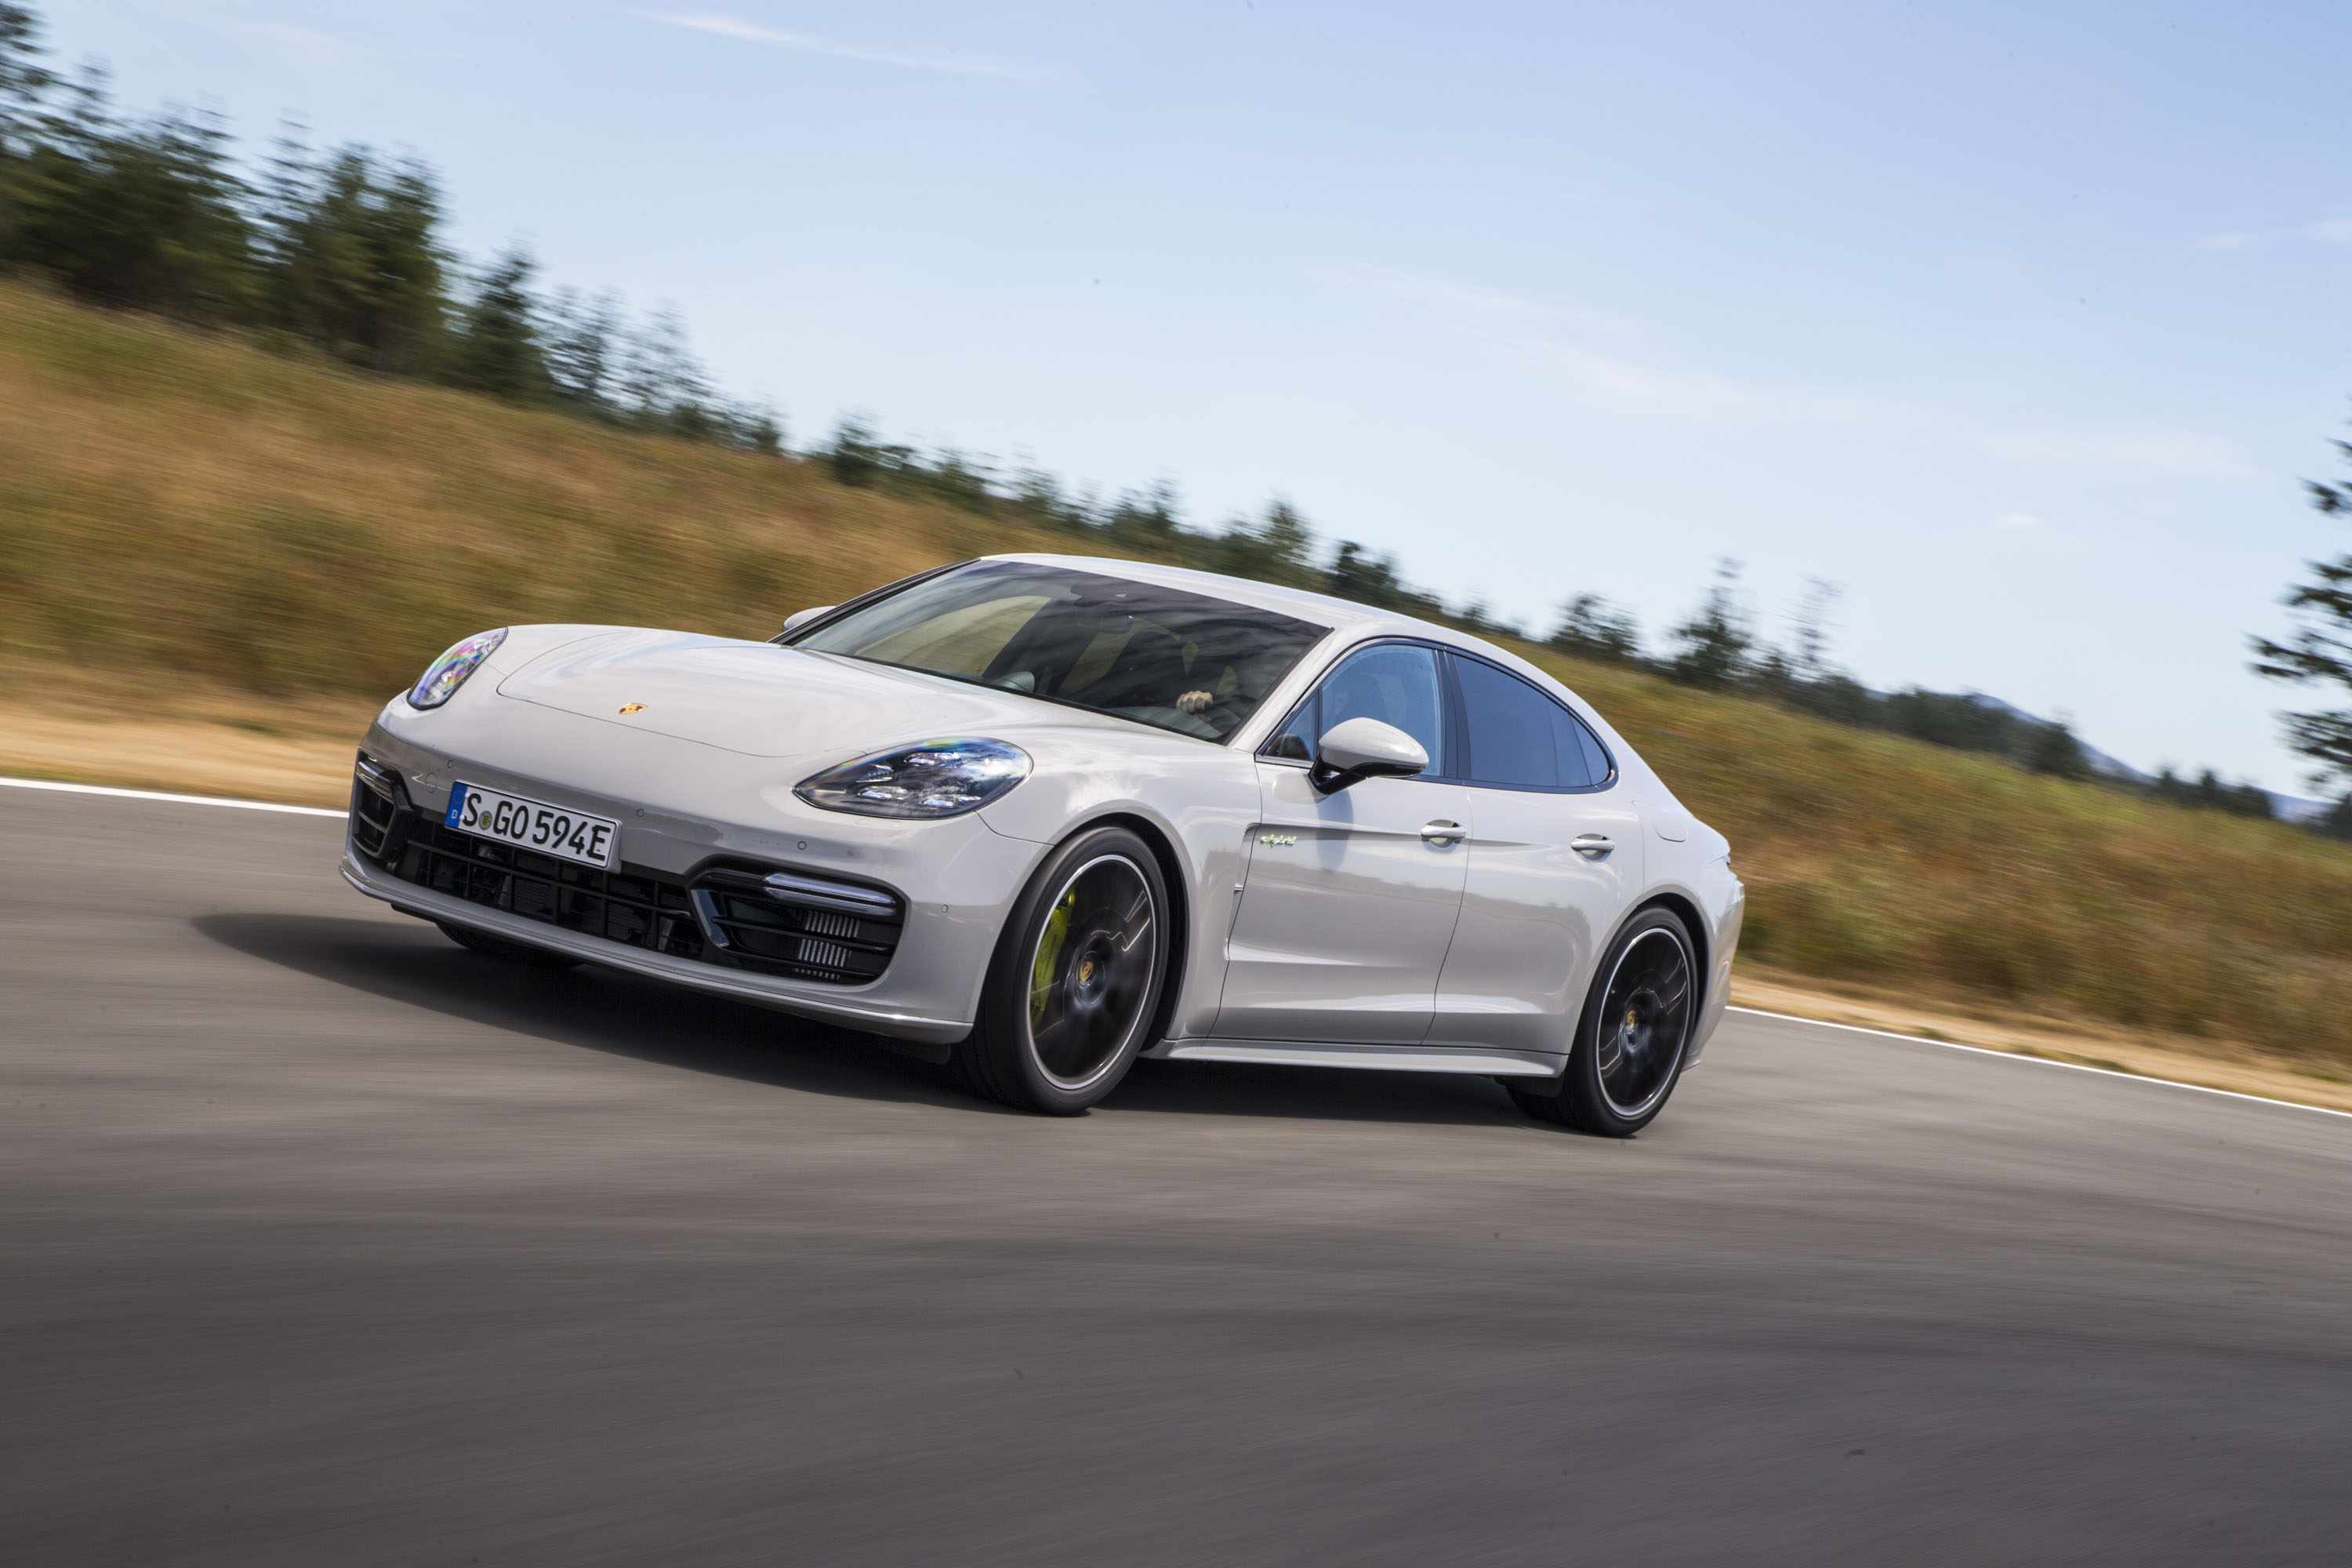 2018 Porsche Panamera Turbo S E Hybrid First Drive Review The 918 Spyder Distilled